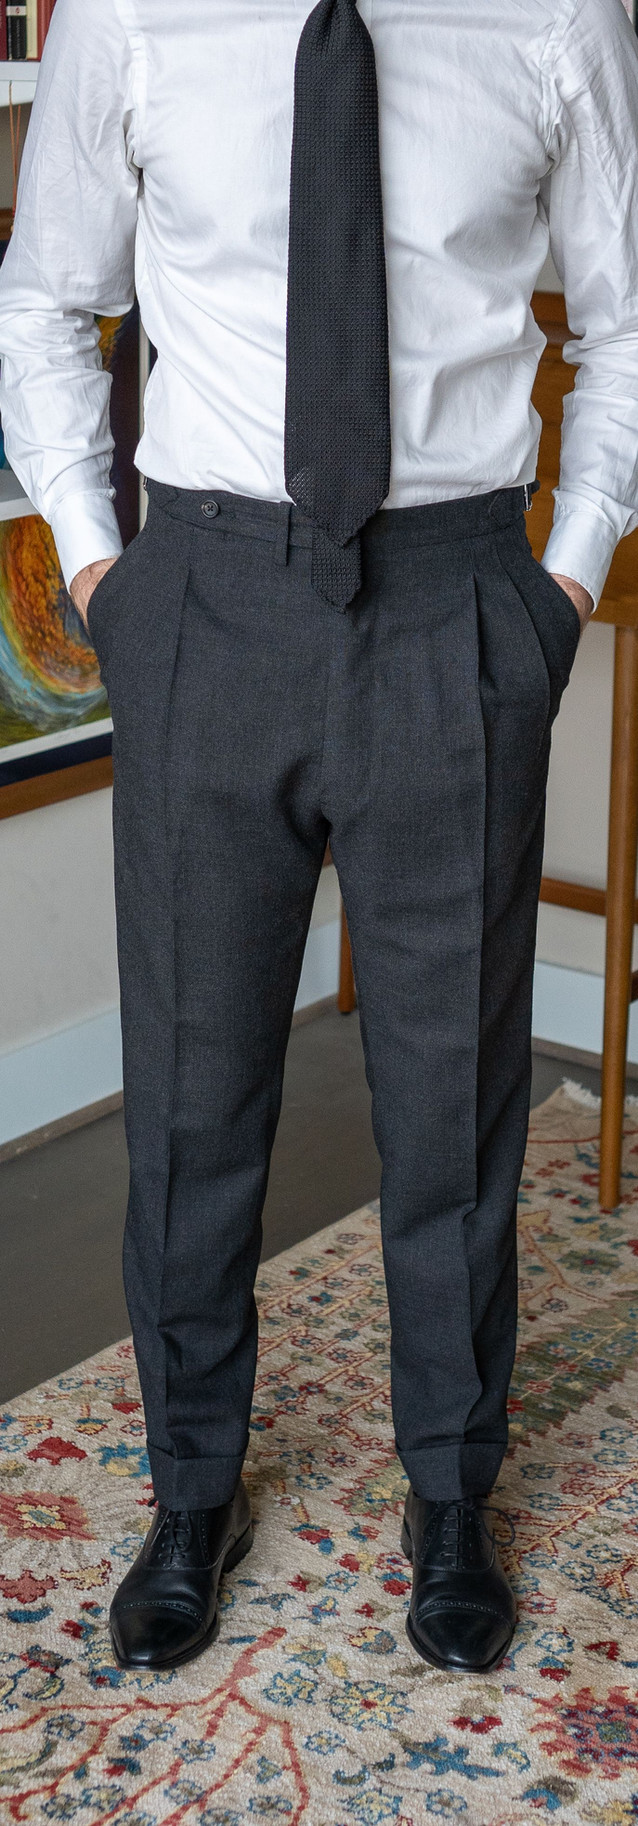 Full-length front view of Anglo-Italian double-pleated trousers